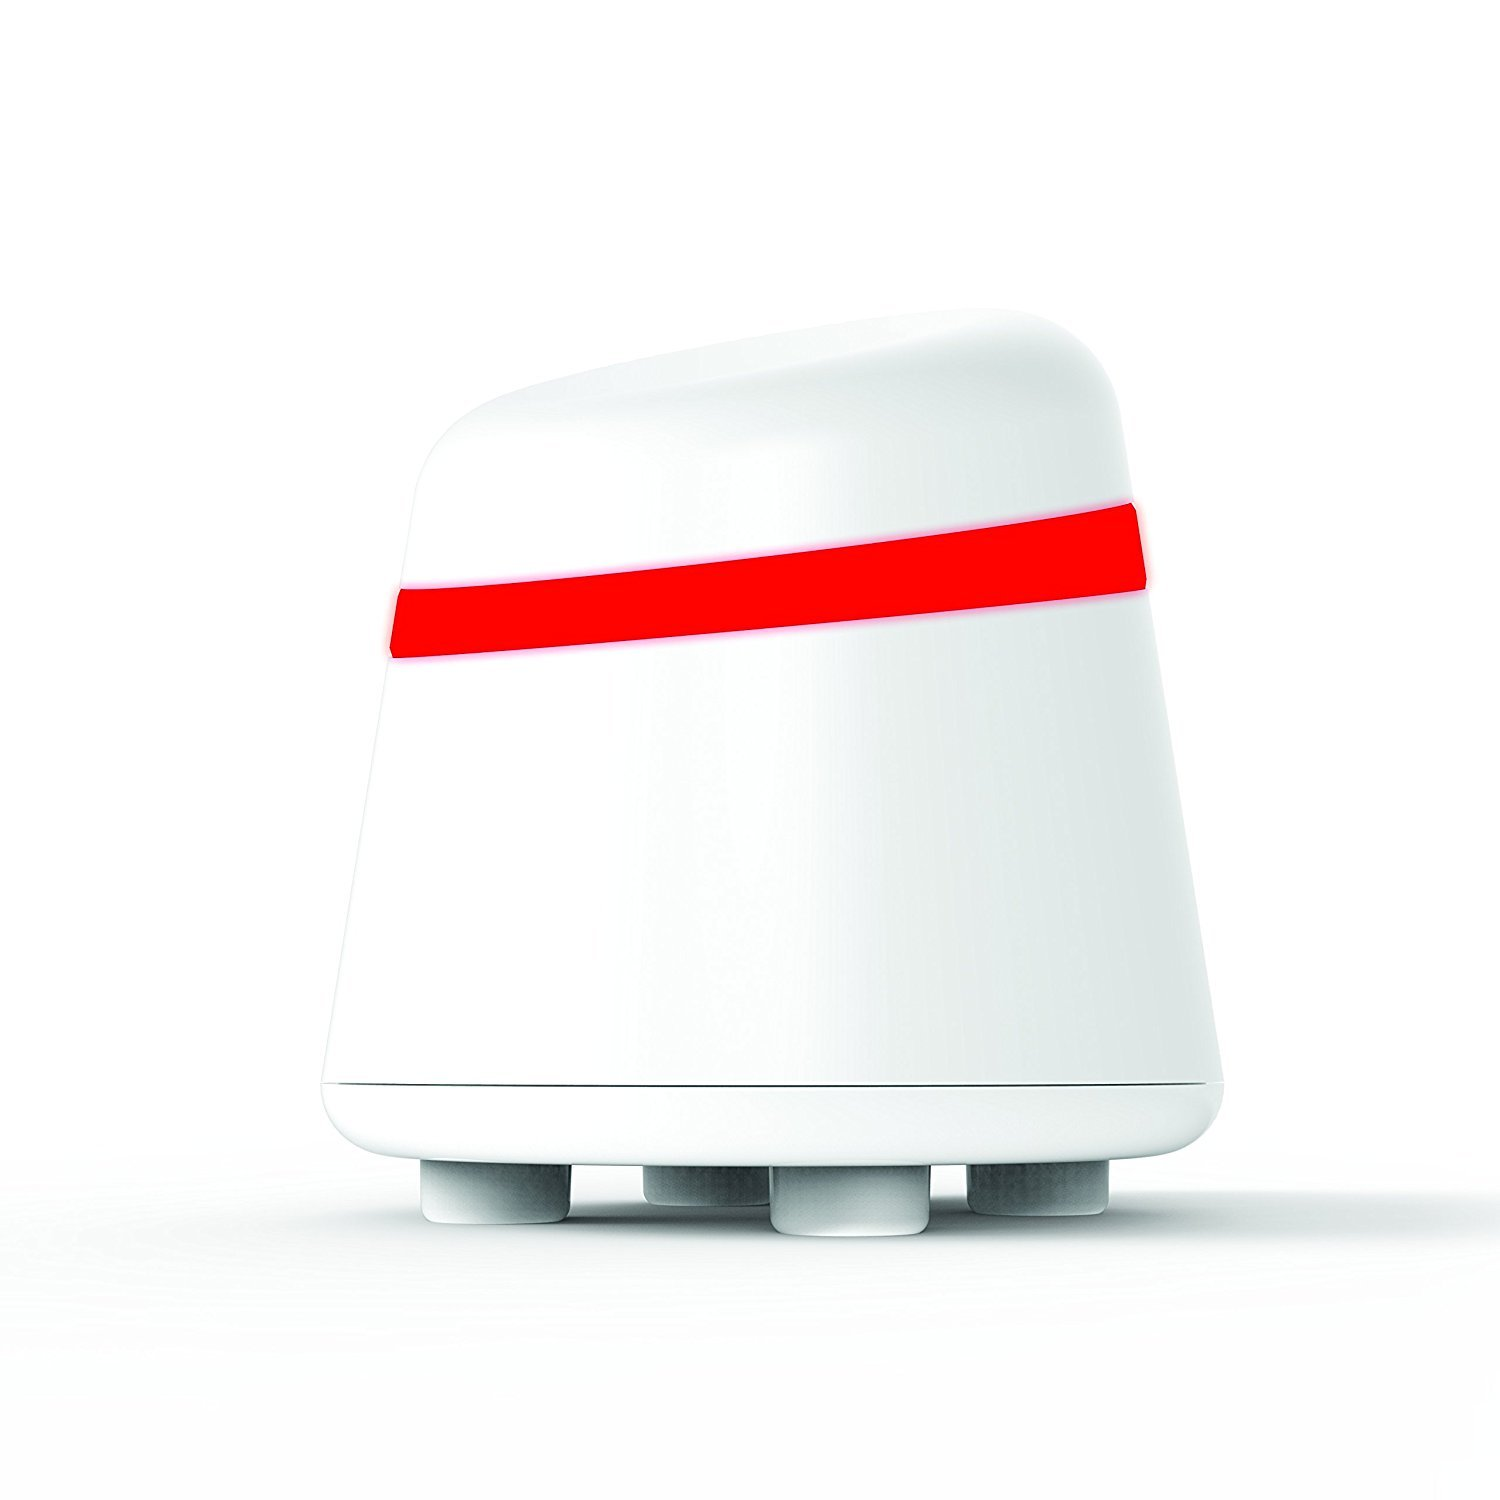 First Alert GLOCO-500 Onelink Wi-Fi Environment Monitor, Apple HomeKit-Enabled